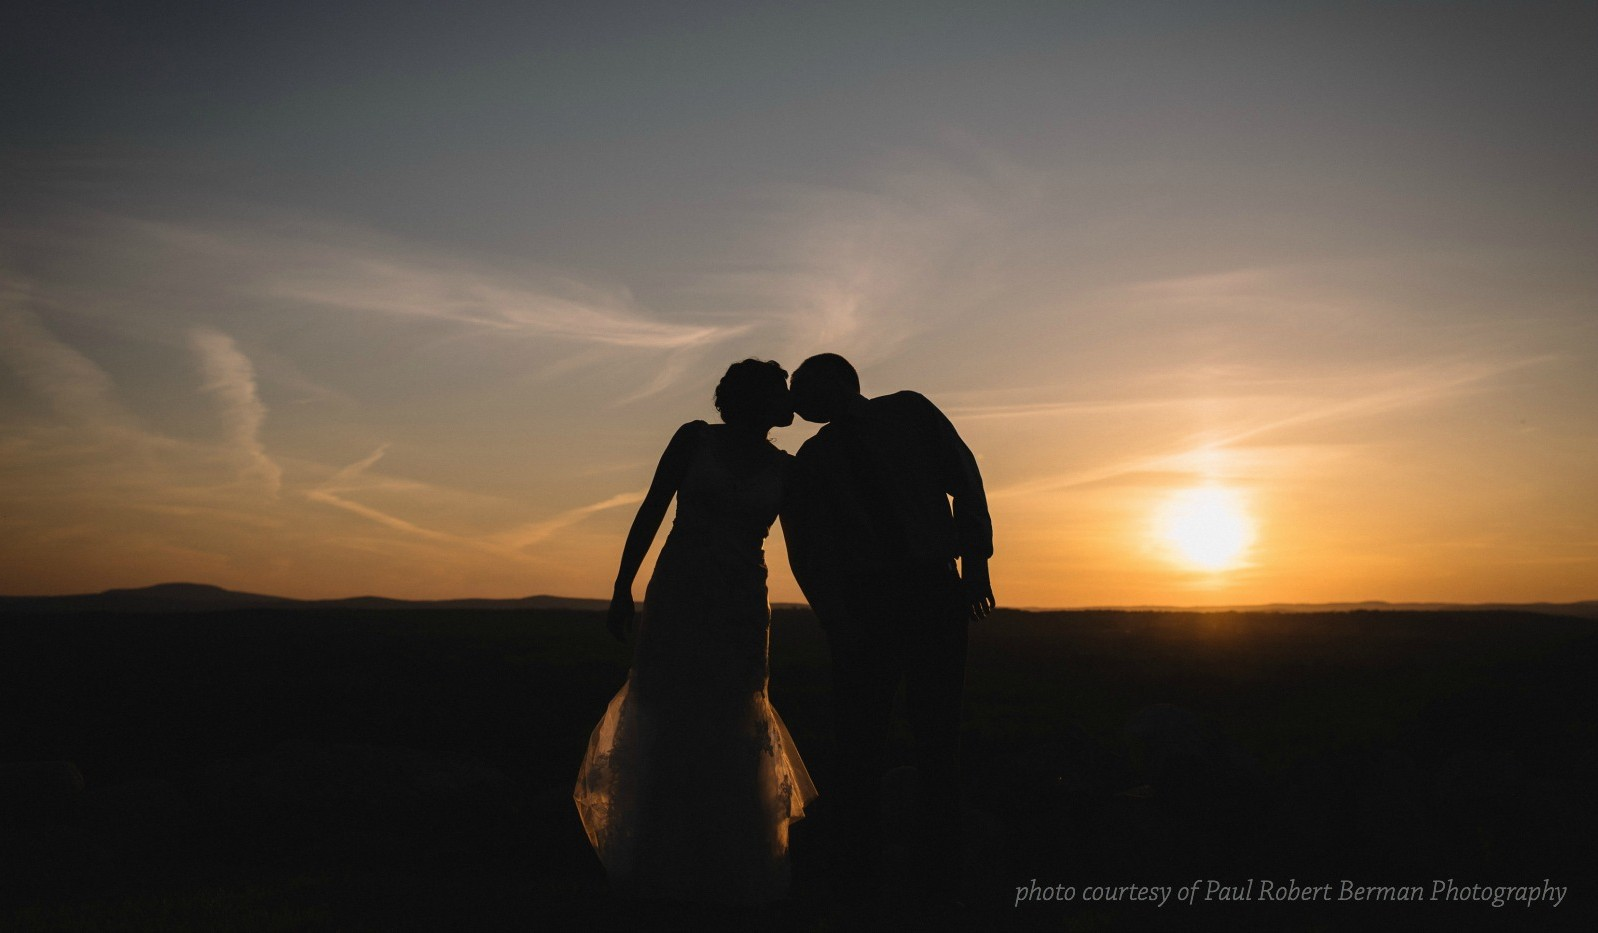 Bride and groom silhouette kissing with beautiful sunset in background